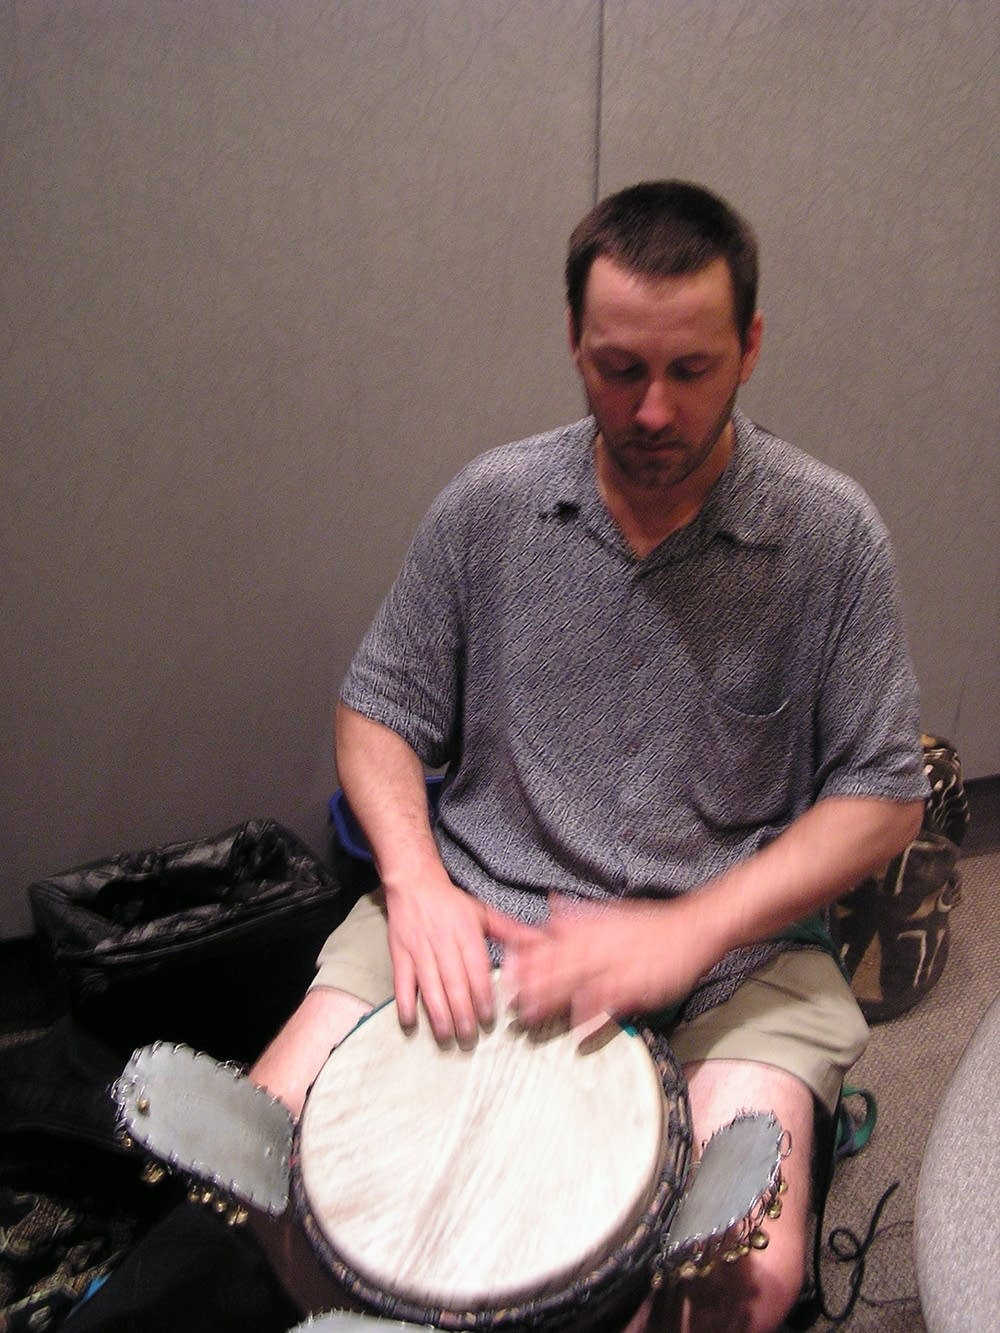 Playing djembe